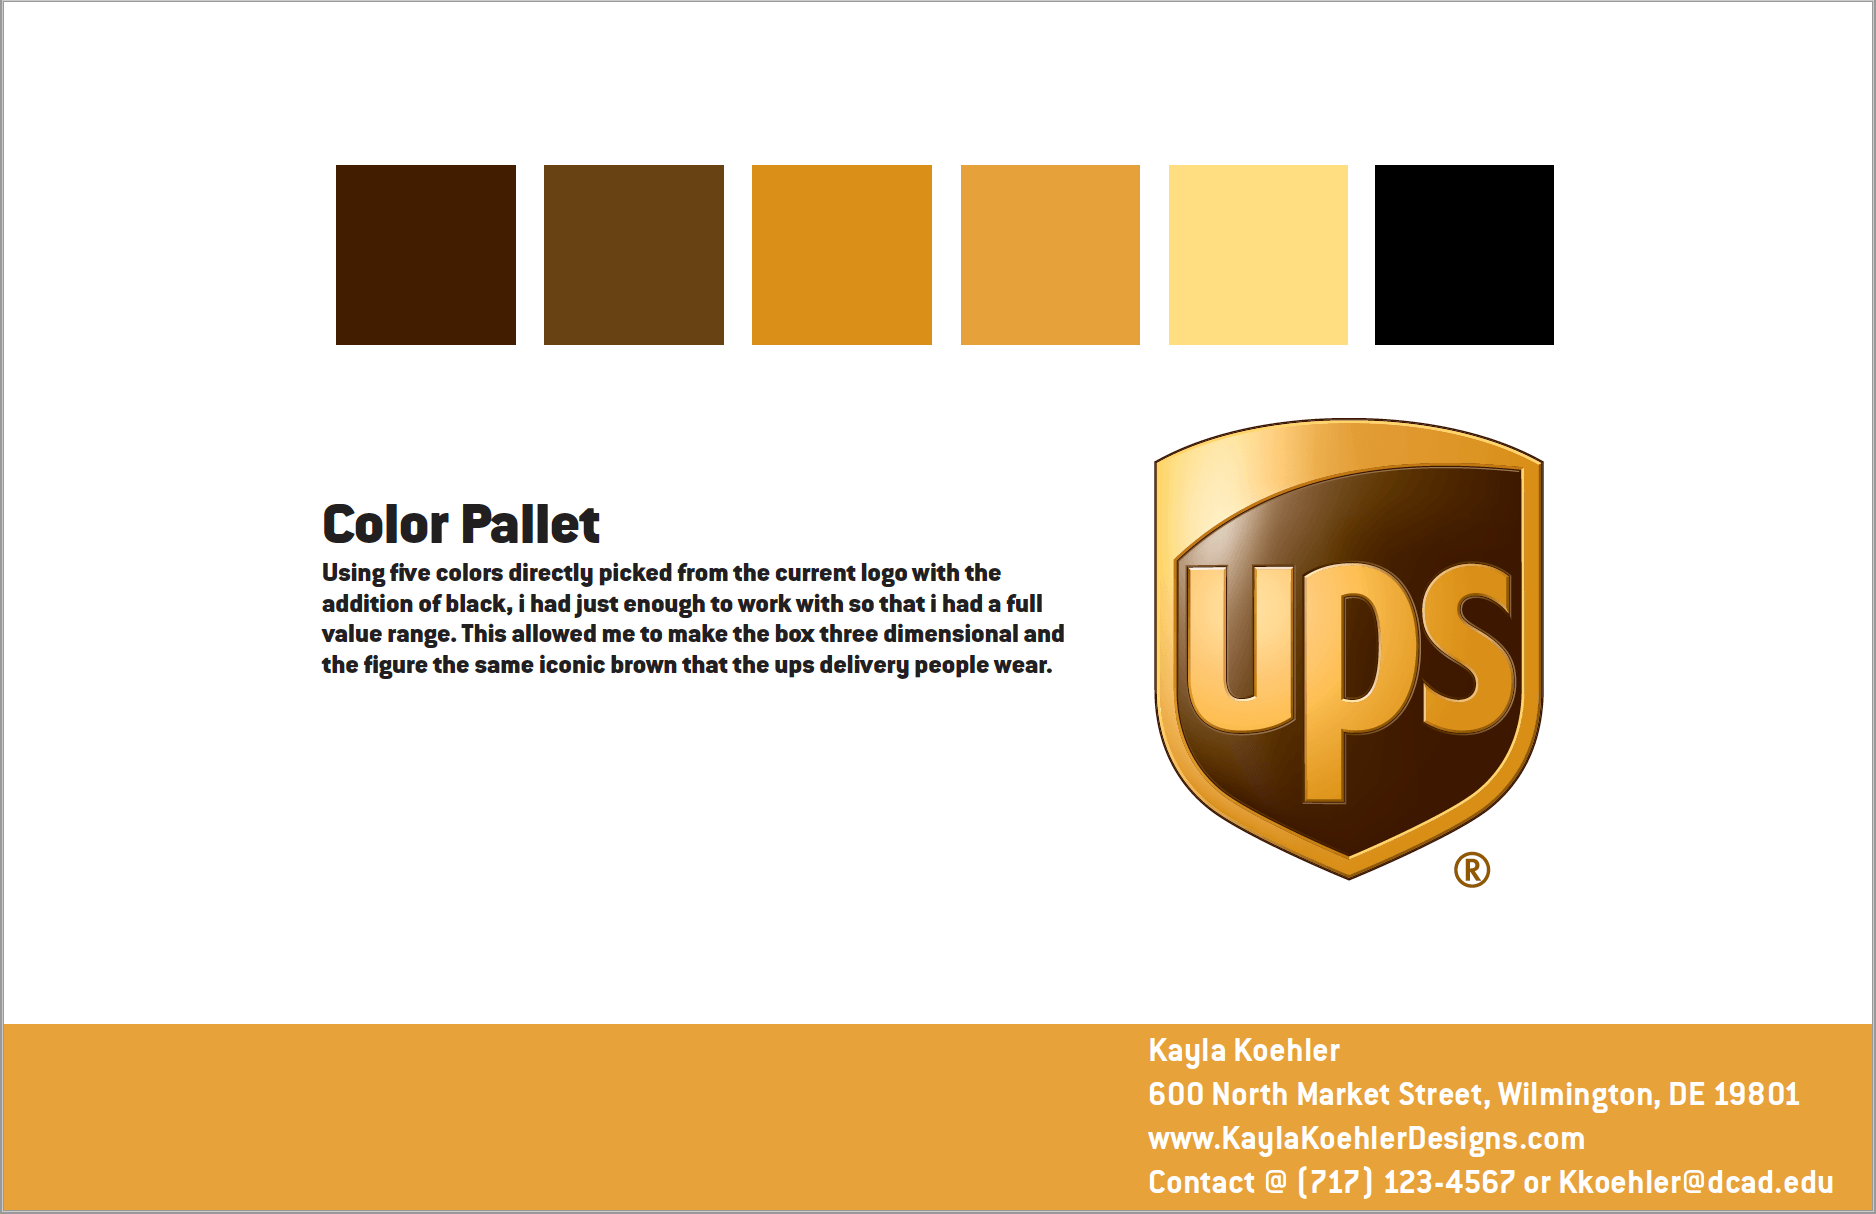 ᐈ ups logo how to change while staying